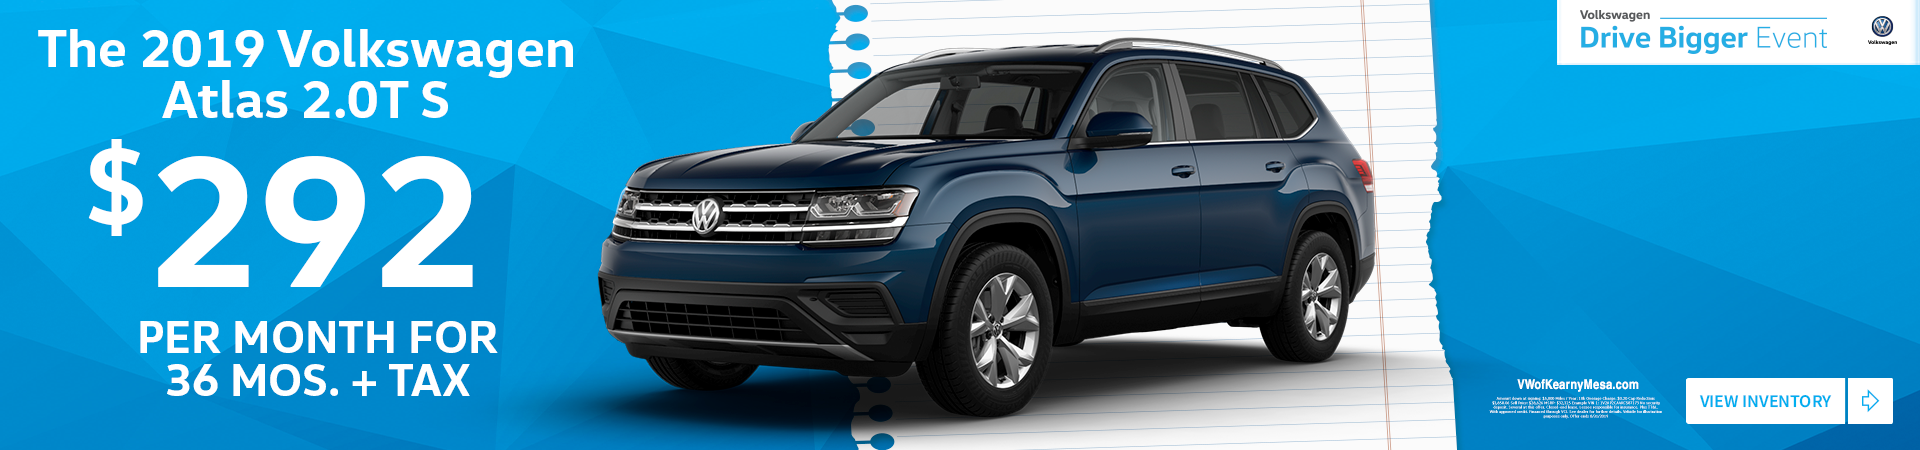 Volkswagen of Kearny Mesa | Car Dealership Serving San Diego